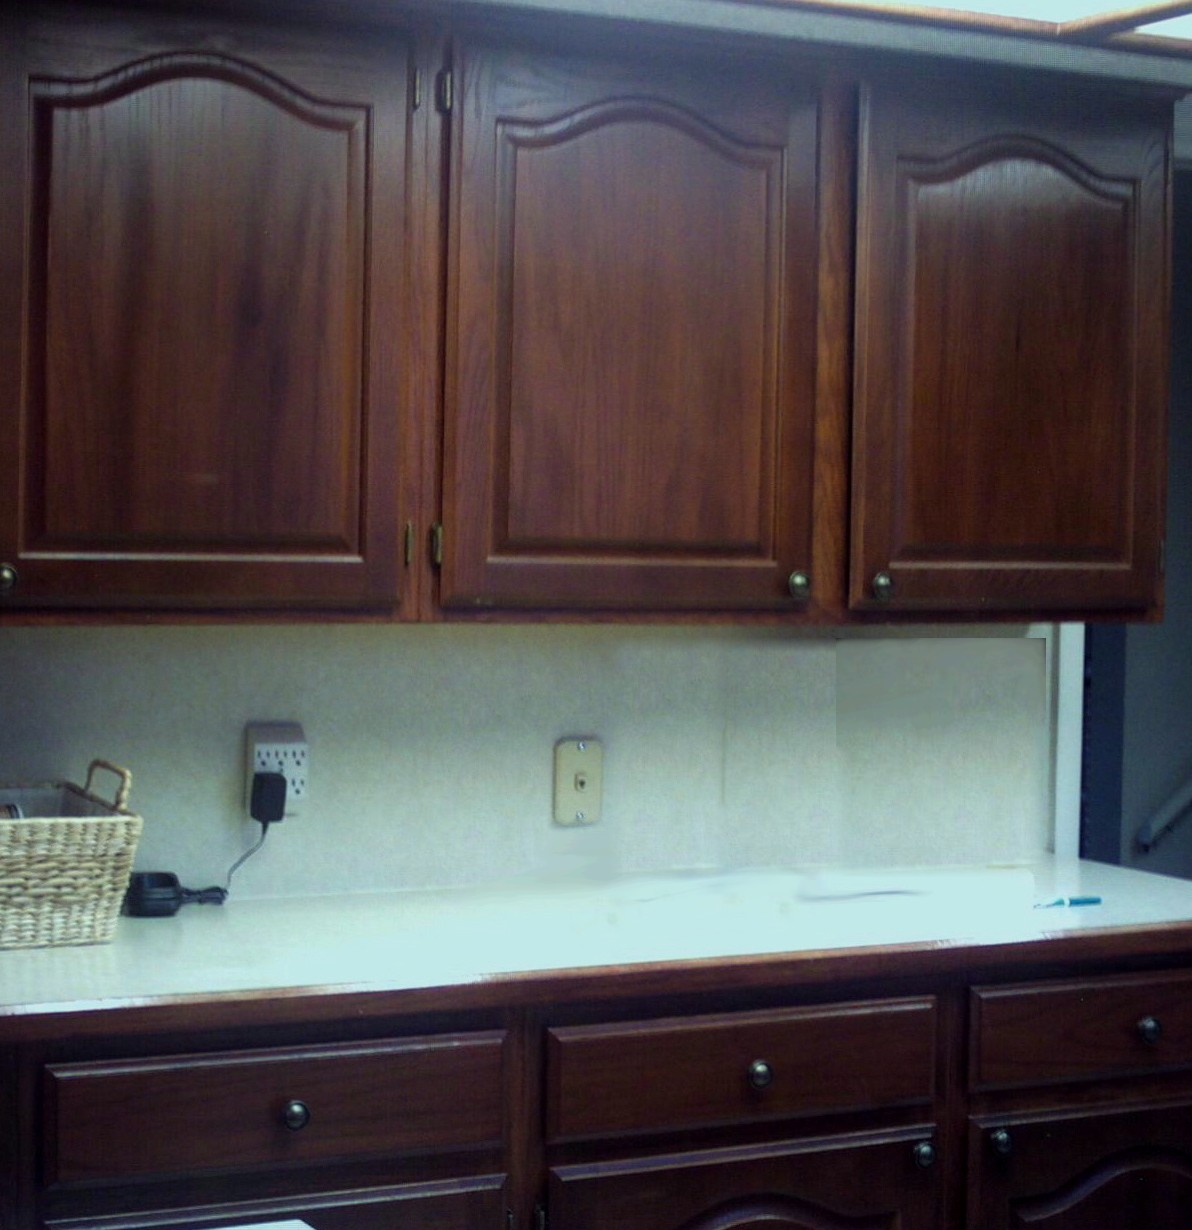 Merveilleux Kitchen Cabinets And Cupboards Refinished In Cherry Wood Color.